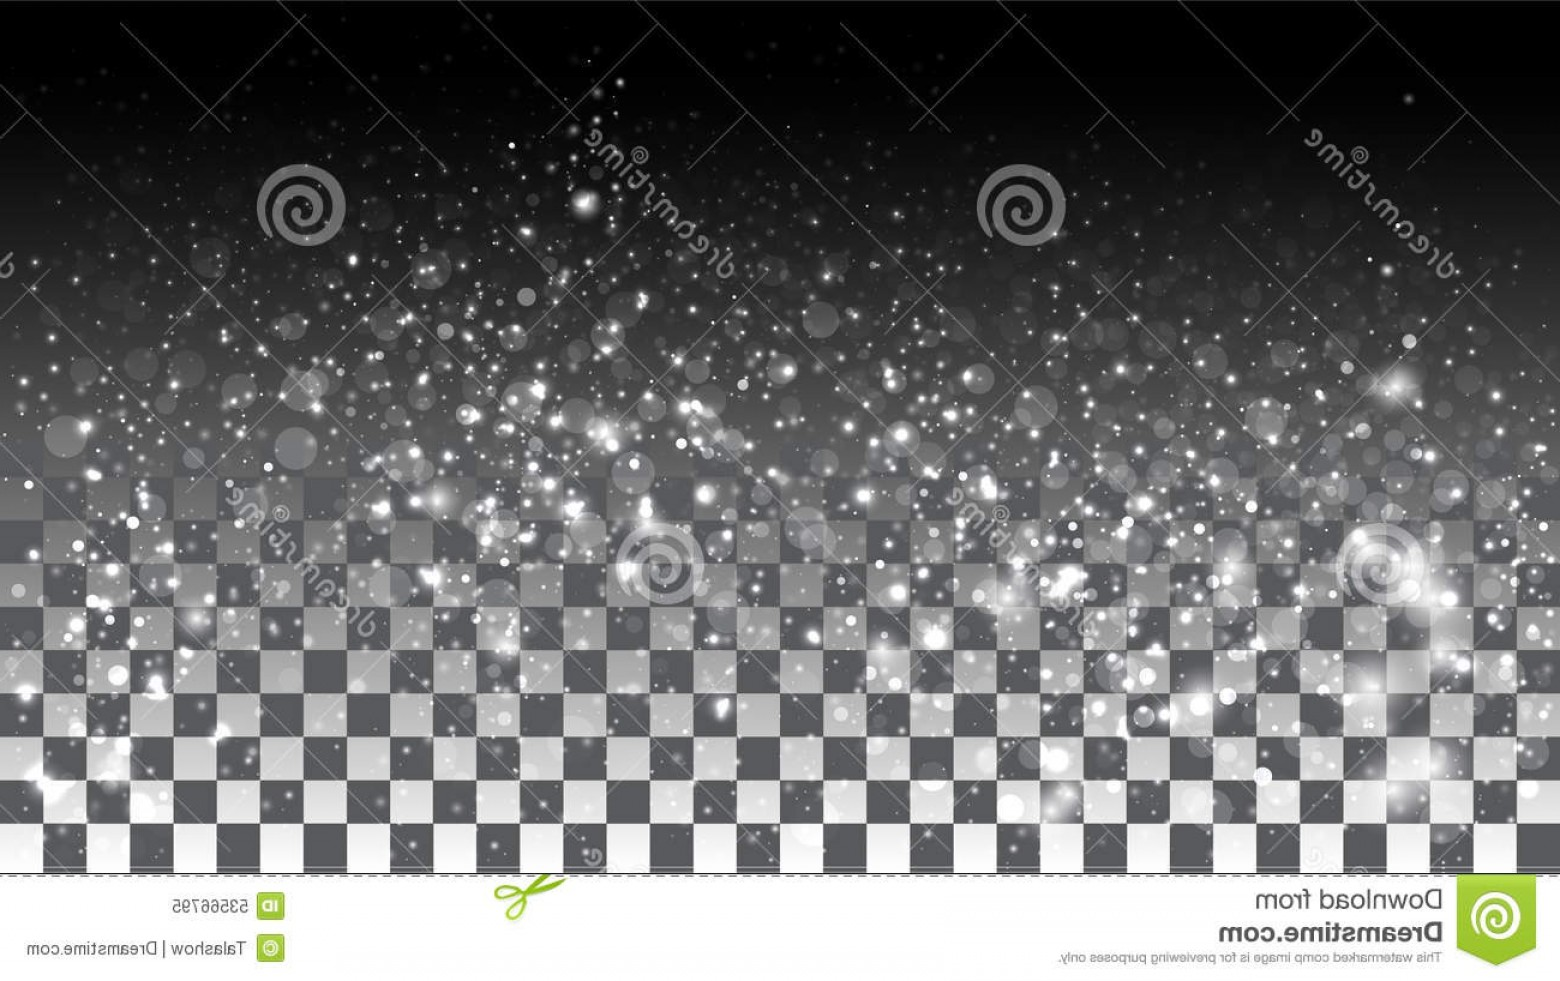 Snow Falling Vector Free: Stock Illustration Falling Snow Transparent Background Vector Special Effects Image